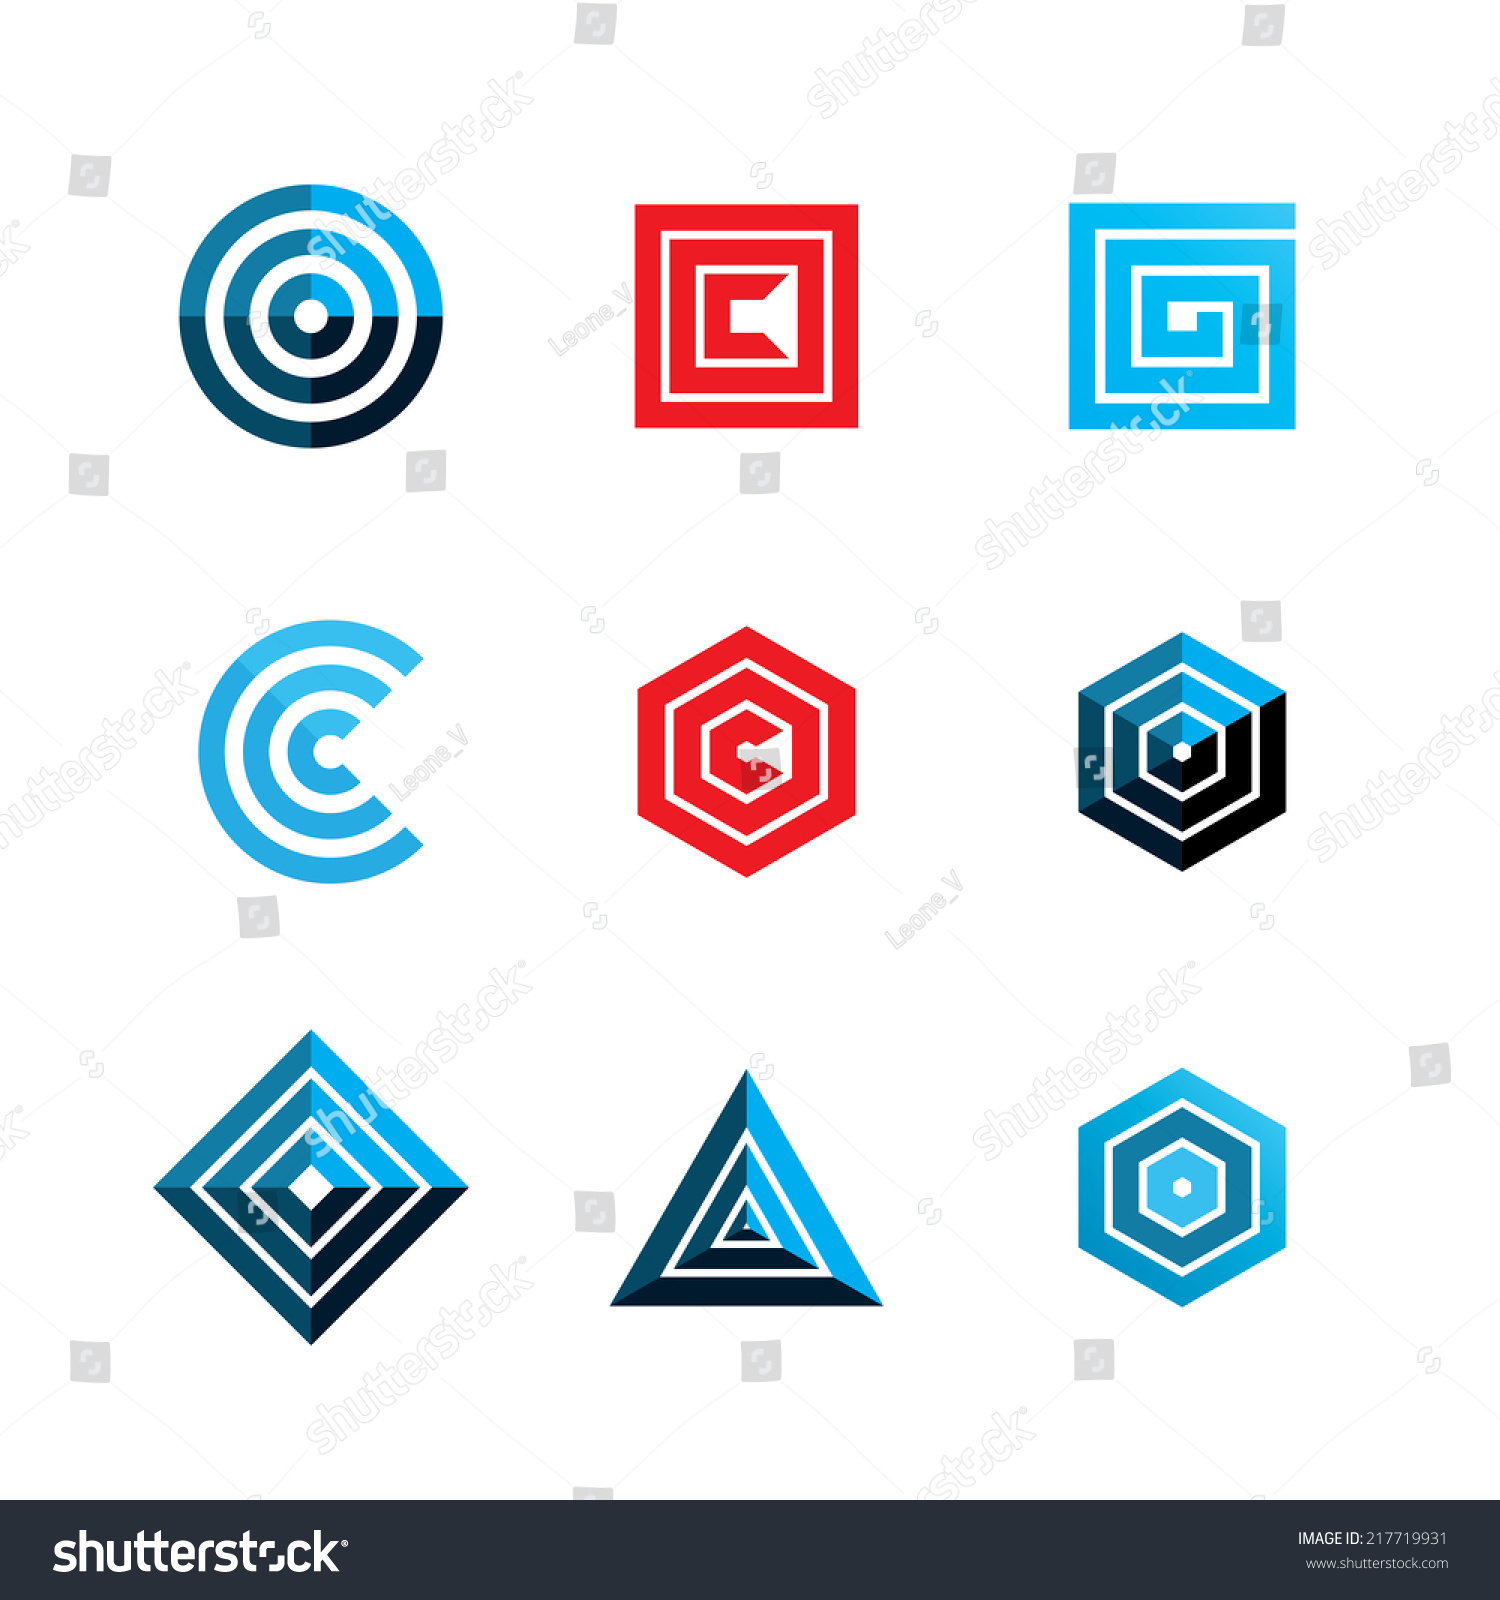 abstract geometric shapes template logo design vector